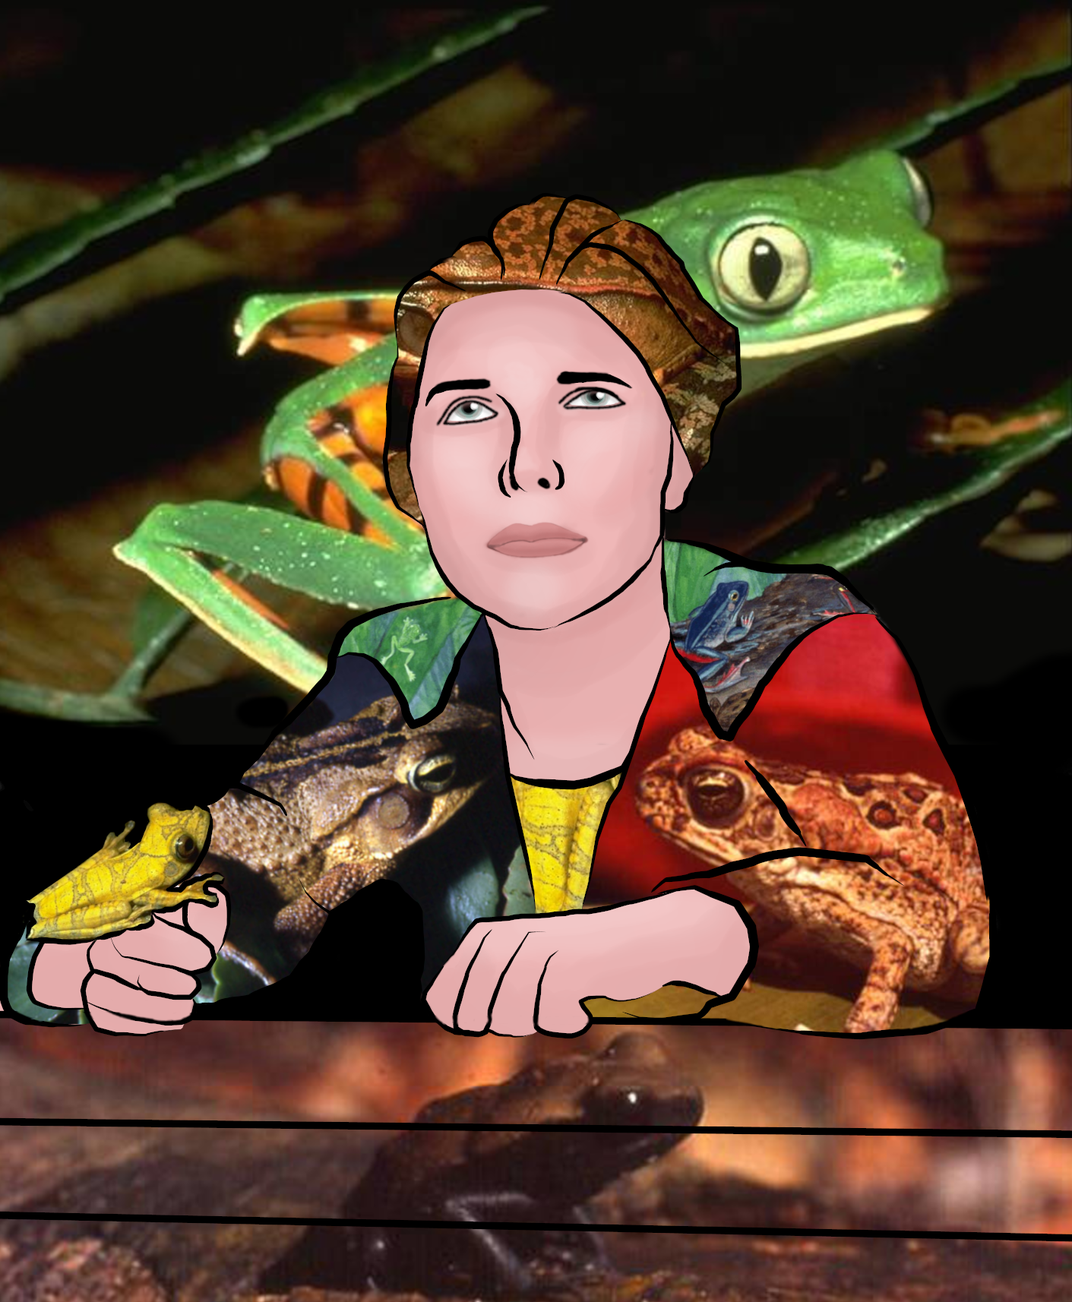 Doris Corchan overlaid with frogs